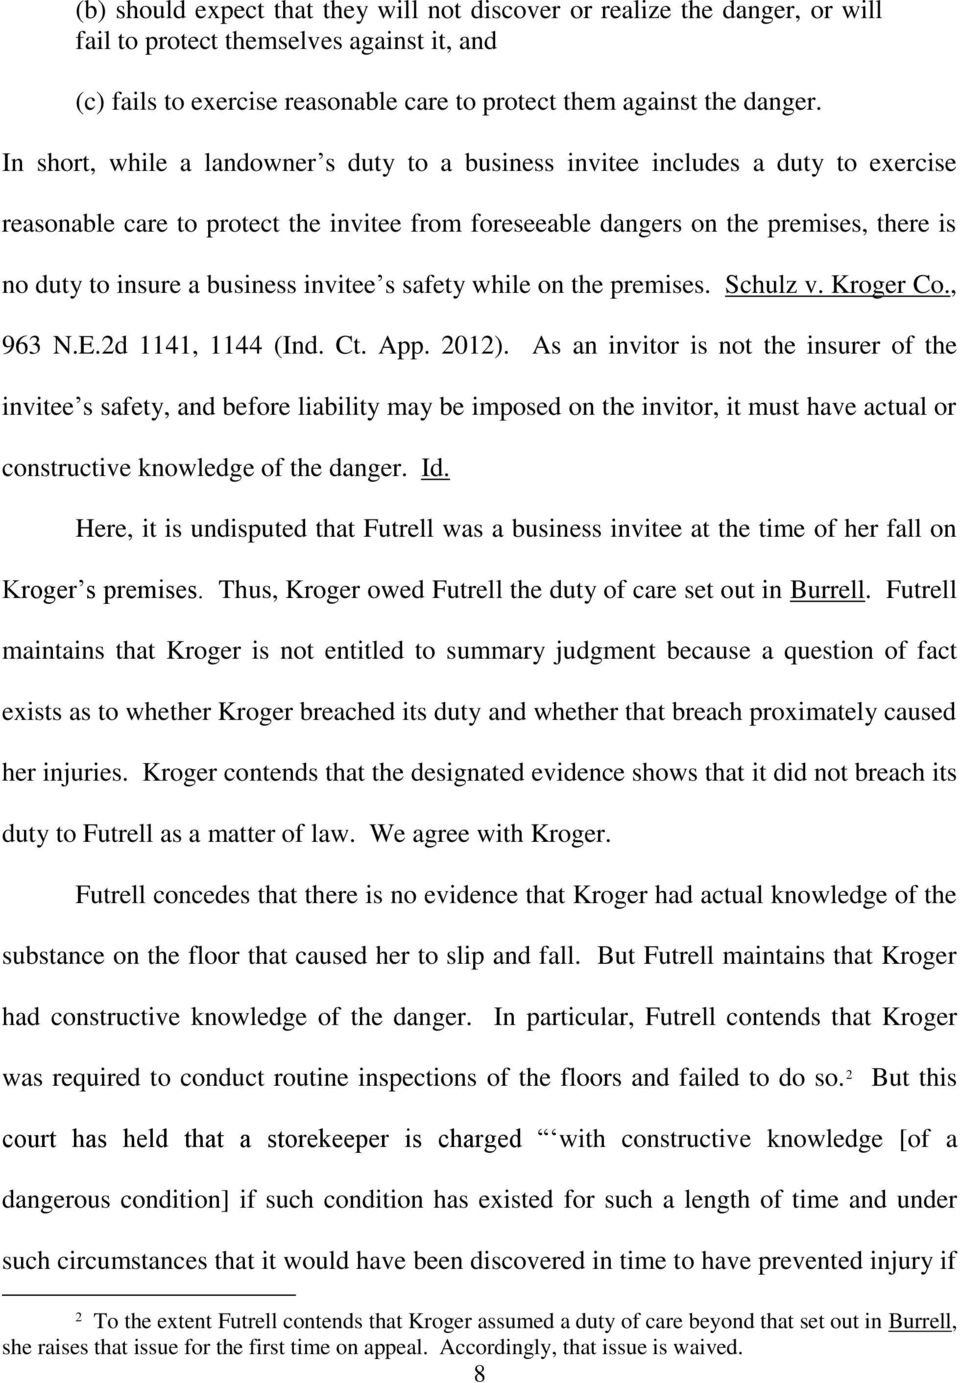 business invitee s safety while on the premises. Schulz v. Kroger Co., 963 N.E.2d 1141, 1144 (Ind. Ct. App. 2012).